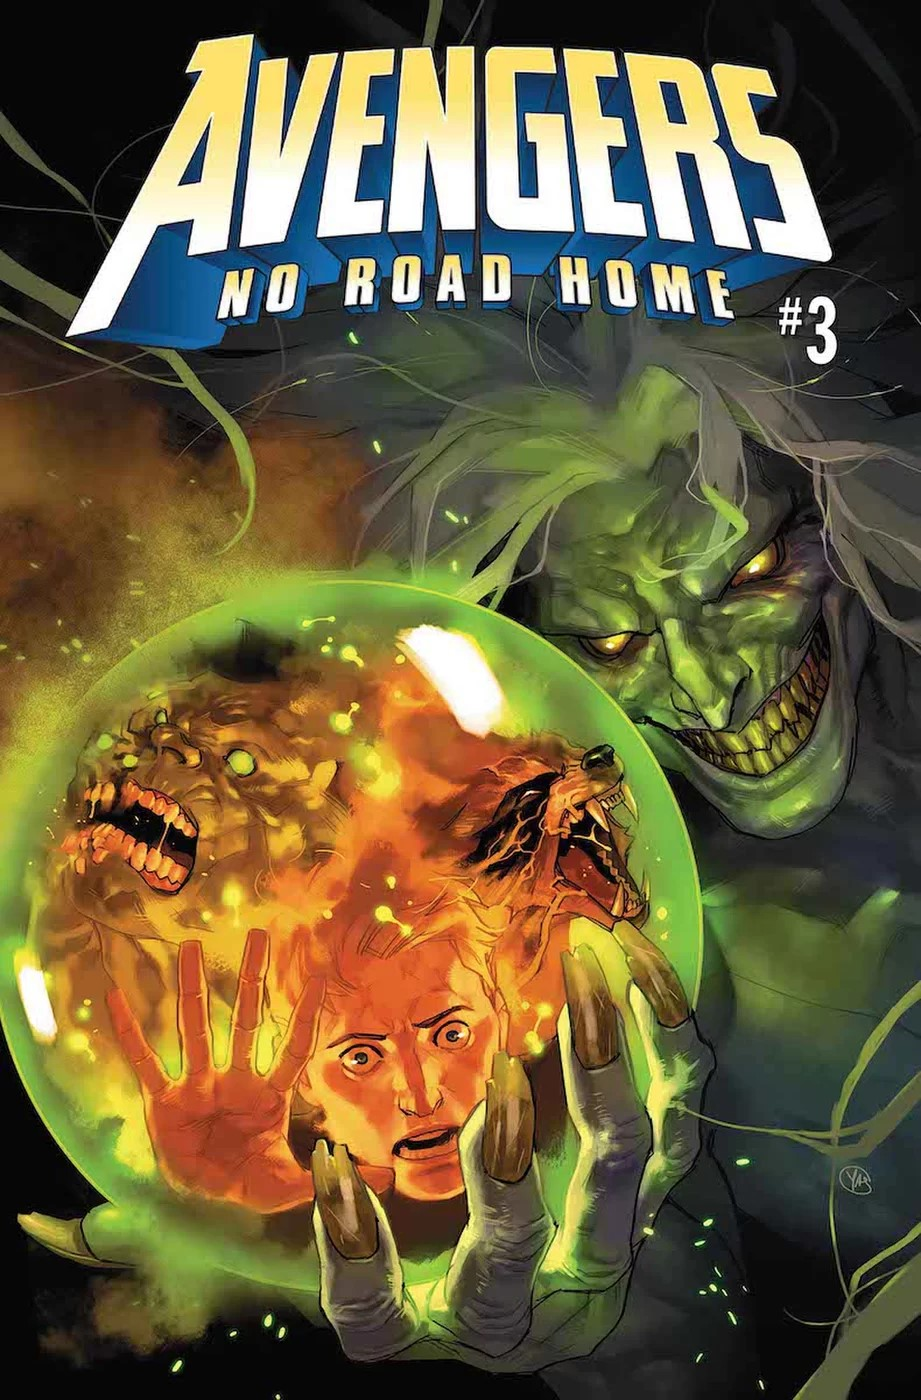 Avengers-No-Road-Home-3